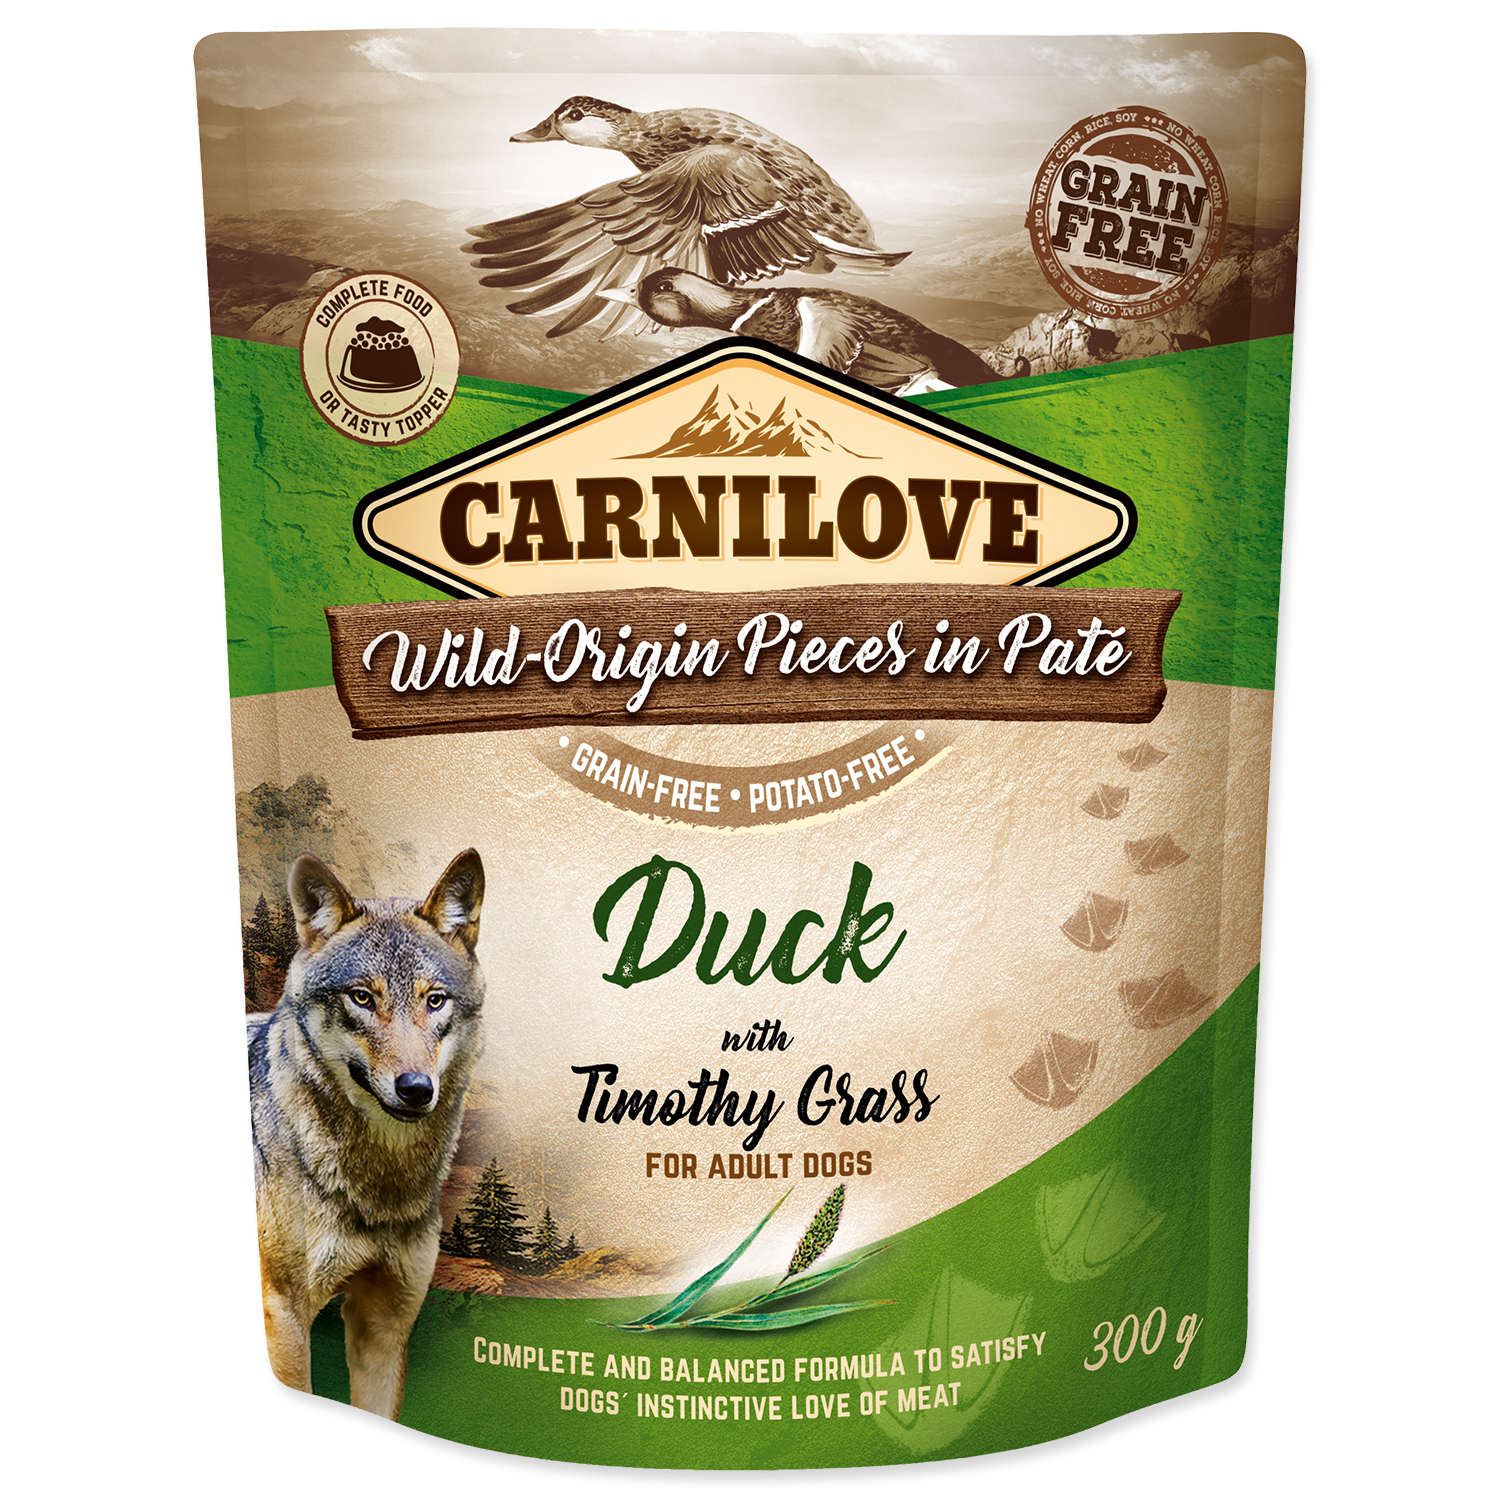 Kapsička CARNILOVE Dog Paté Duck with Timothy Grass 300g